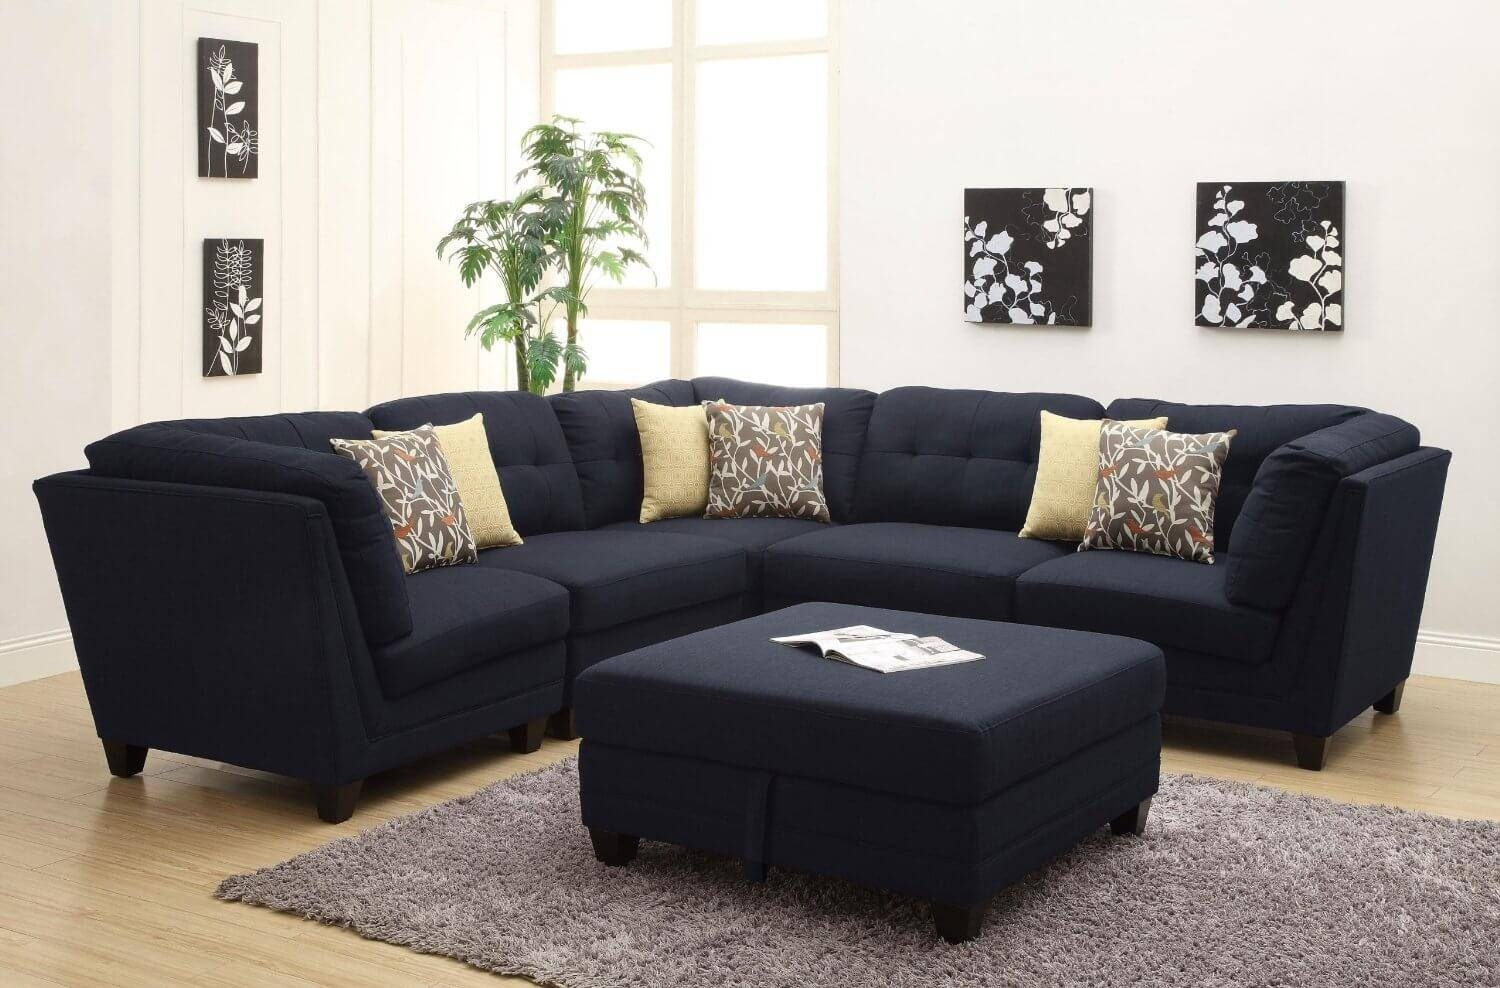 Sofa: Tufted Couch | Cheap Sectionals | Tufted Sectional Sofa Regarding Cheap Tufted Sofas (View 10 of 30)